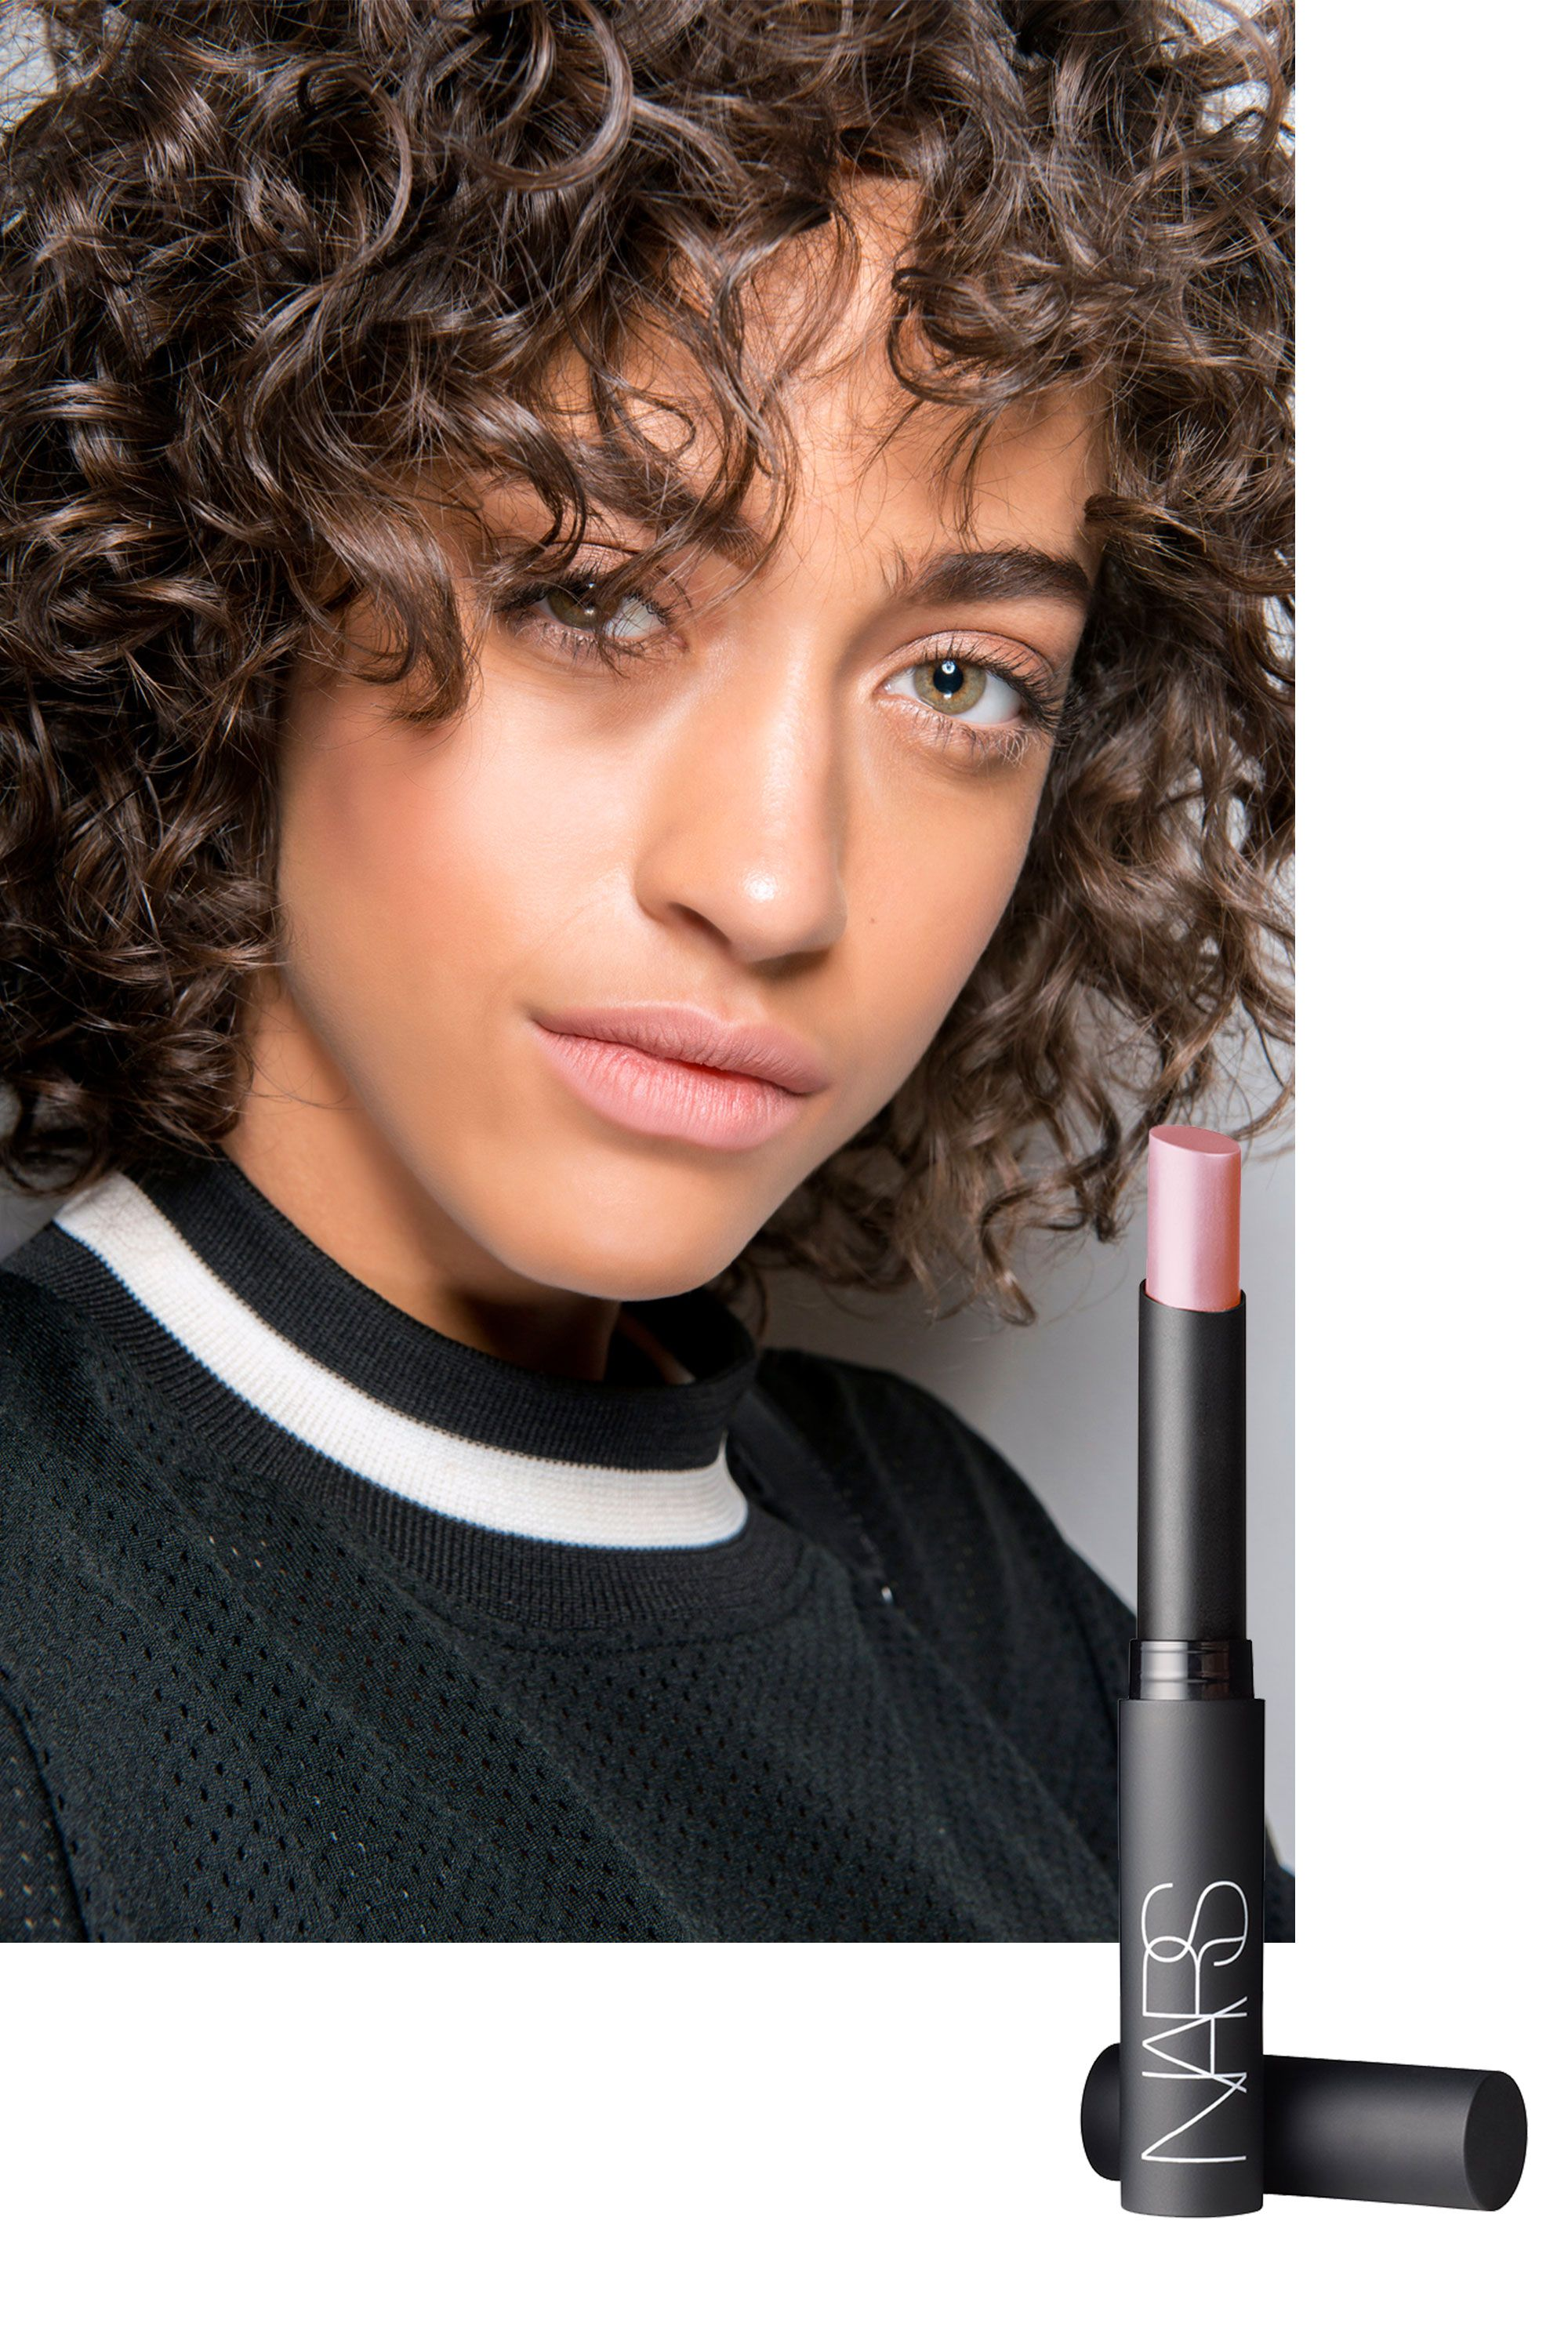 """<p><strong data-verified=""""redactor"""" data-redactor-tag=""""strong""""></strong>Whether you're wearing a cozy sweater or a romantic ruffled gown, a matte nude lip is as elegant as it is understated. Round out the look with a """"dusty cheek"""" and a wash of rust-colored shadow like makeup artist Benjamin Puckey did backstage at&nbsp&#x3B;Brock Collection<i data-redactor-tag=""""i"""">.<br><br><i data-redactor-tag=""""i""""><i data-redactor-tag=""""i"""">For a similar look, try&nbsp&#x3B;<a href=""""http://www.narscosmetics.com/USA/mad%C3%A8re-pure-matte-lipstick/0607845035084.html"""" target=""""_blank"""">NARS Pure Matte Lipstick in Madère</a> ($28).</i></i><br></i></p><p><i data-redactor-tag=""""i""""></i></p><p><i data-redactor-tag=""""i""""></i></p><p><i data-redactor-tag=""""i""""></i></p><p><i data-redactor-tag=""""i""""></i></p><p><i data-redactor-tag=""""i""""></i></p><p><br></p>"""